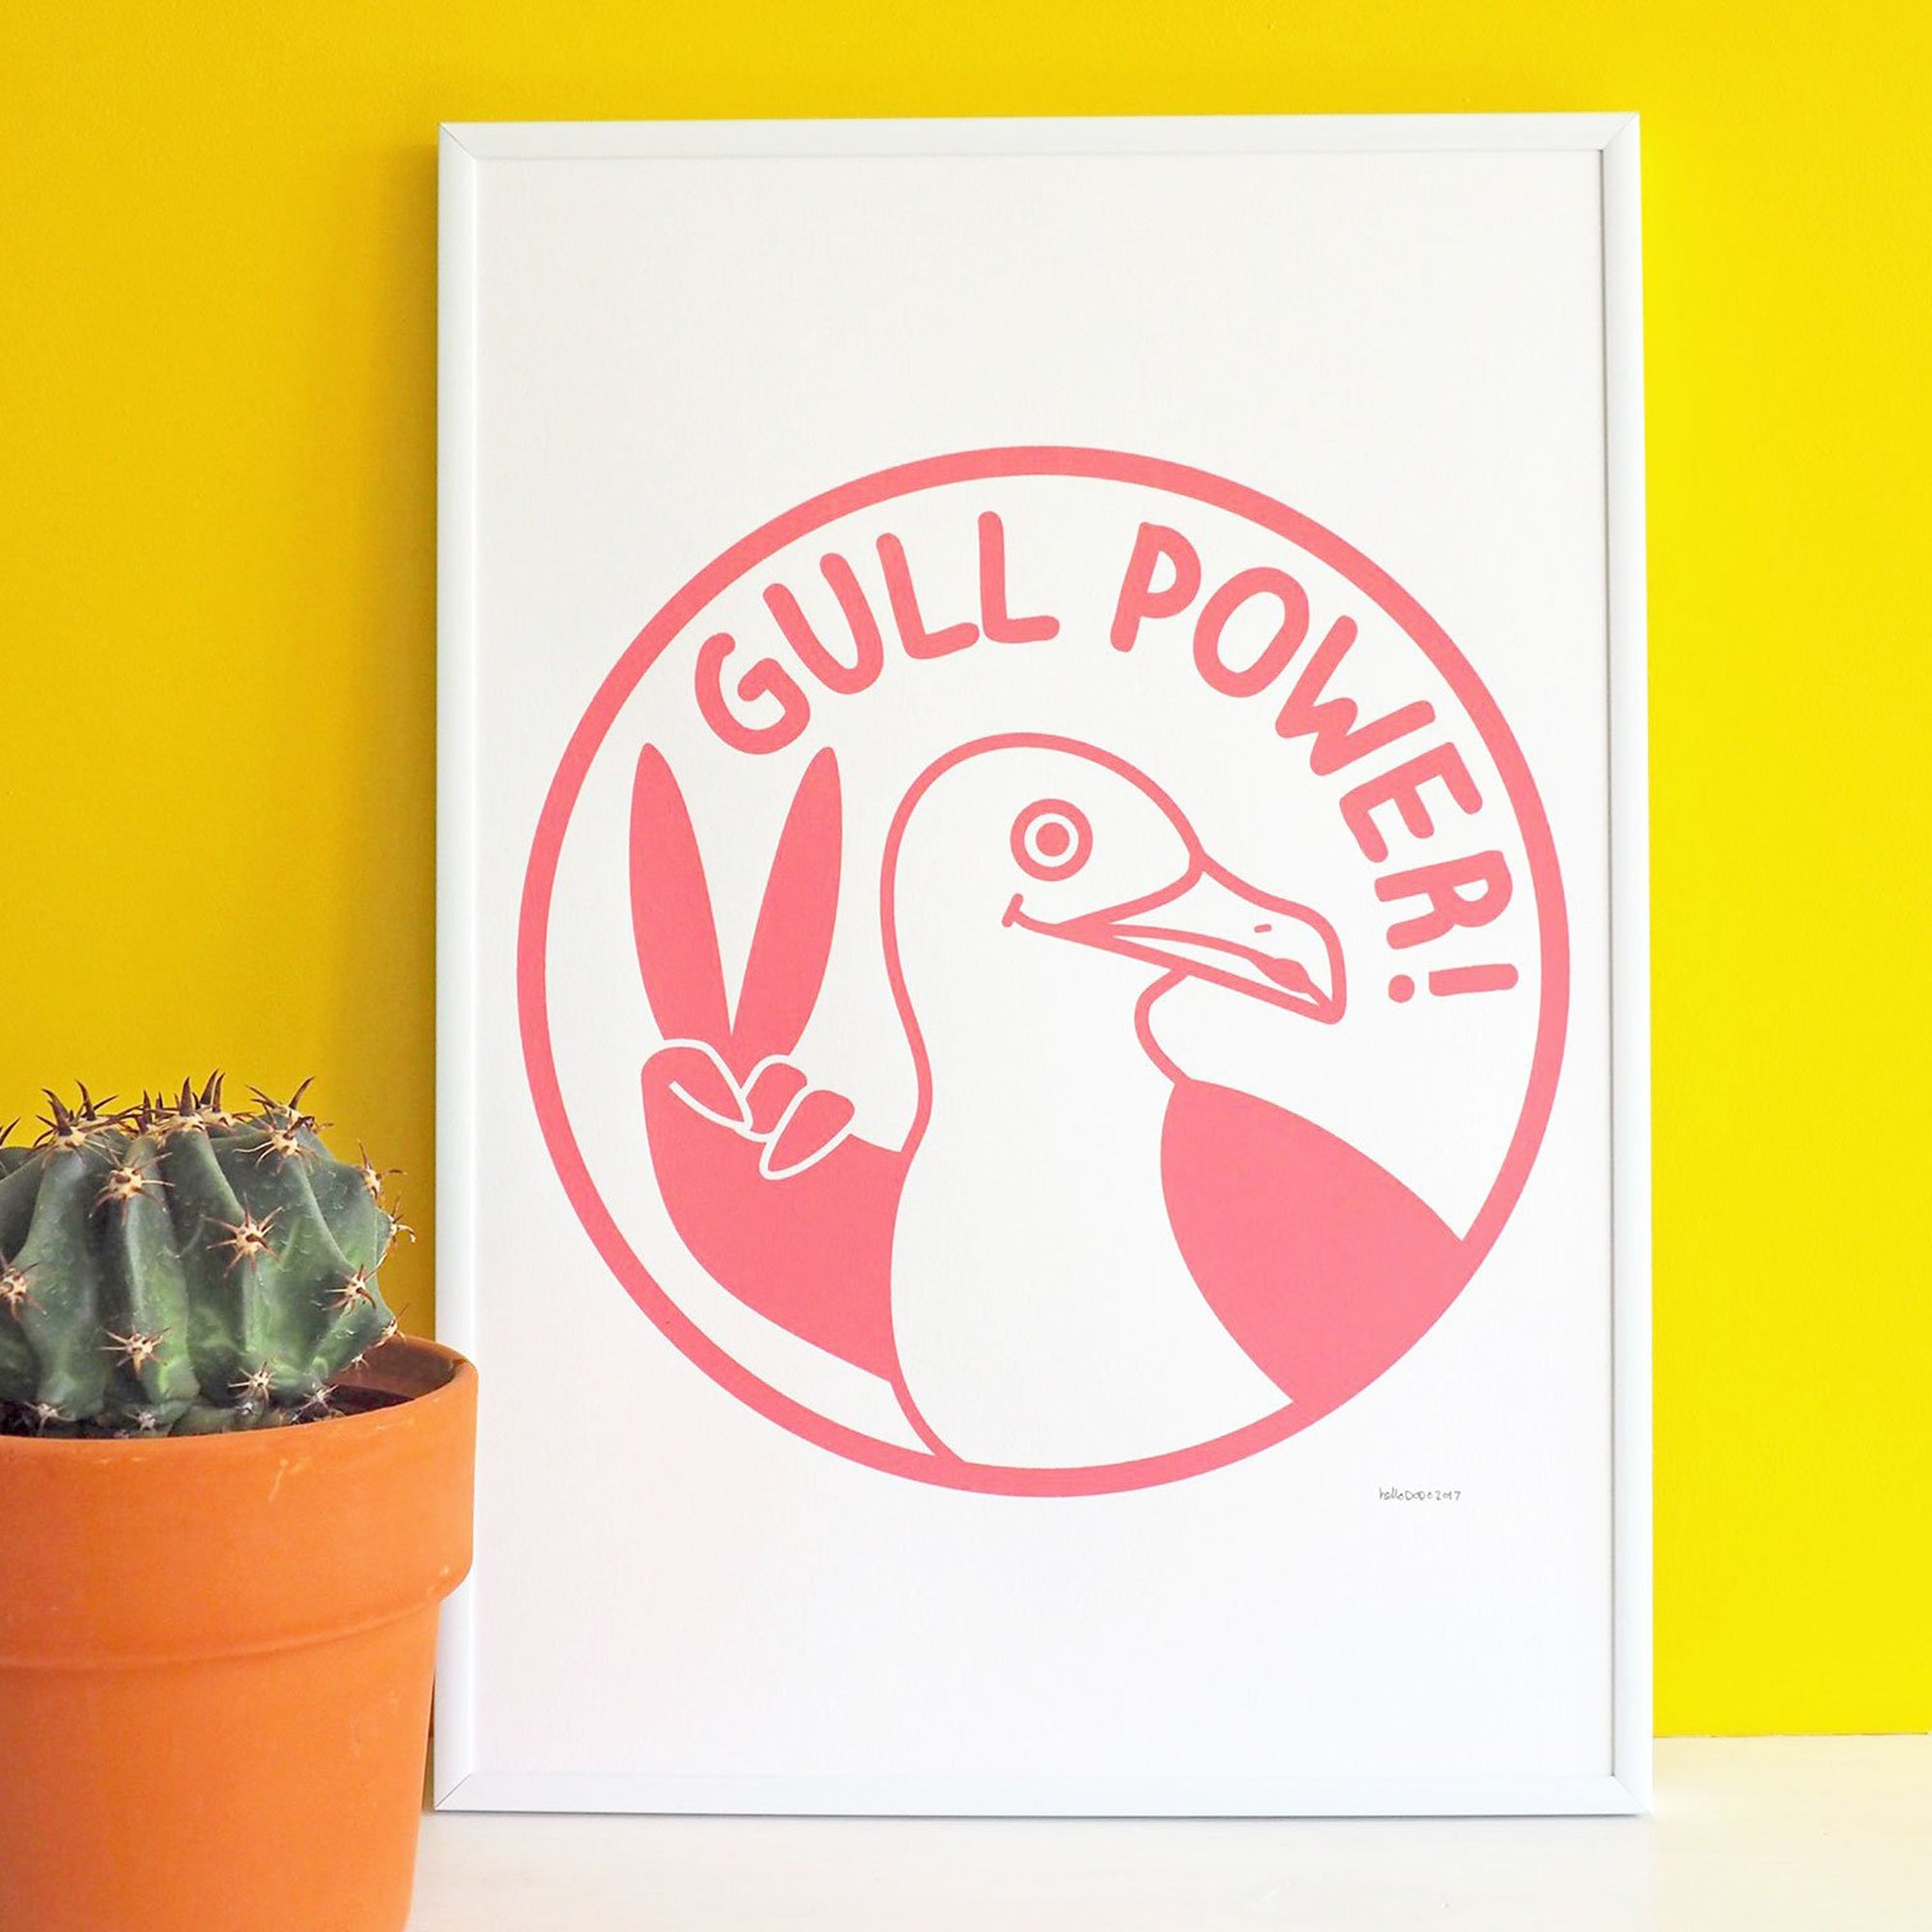 Gull Power screen print - Inspired